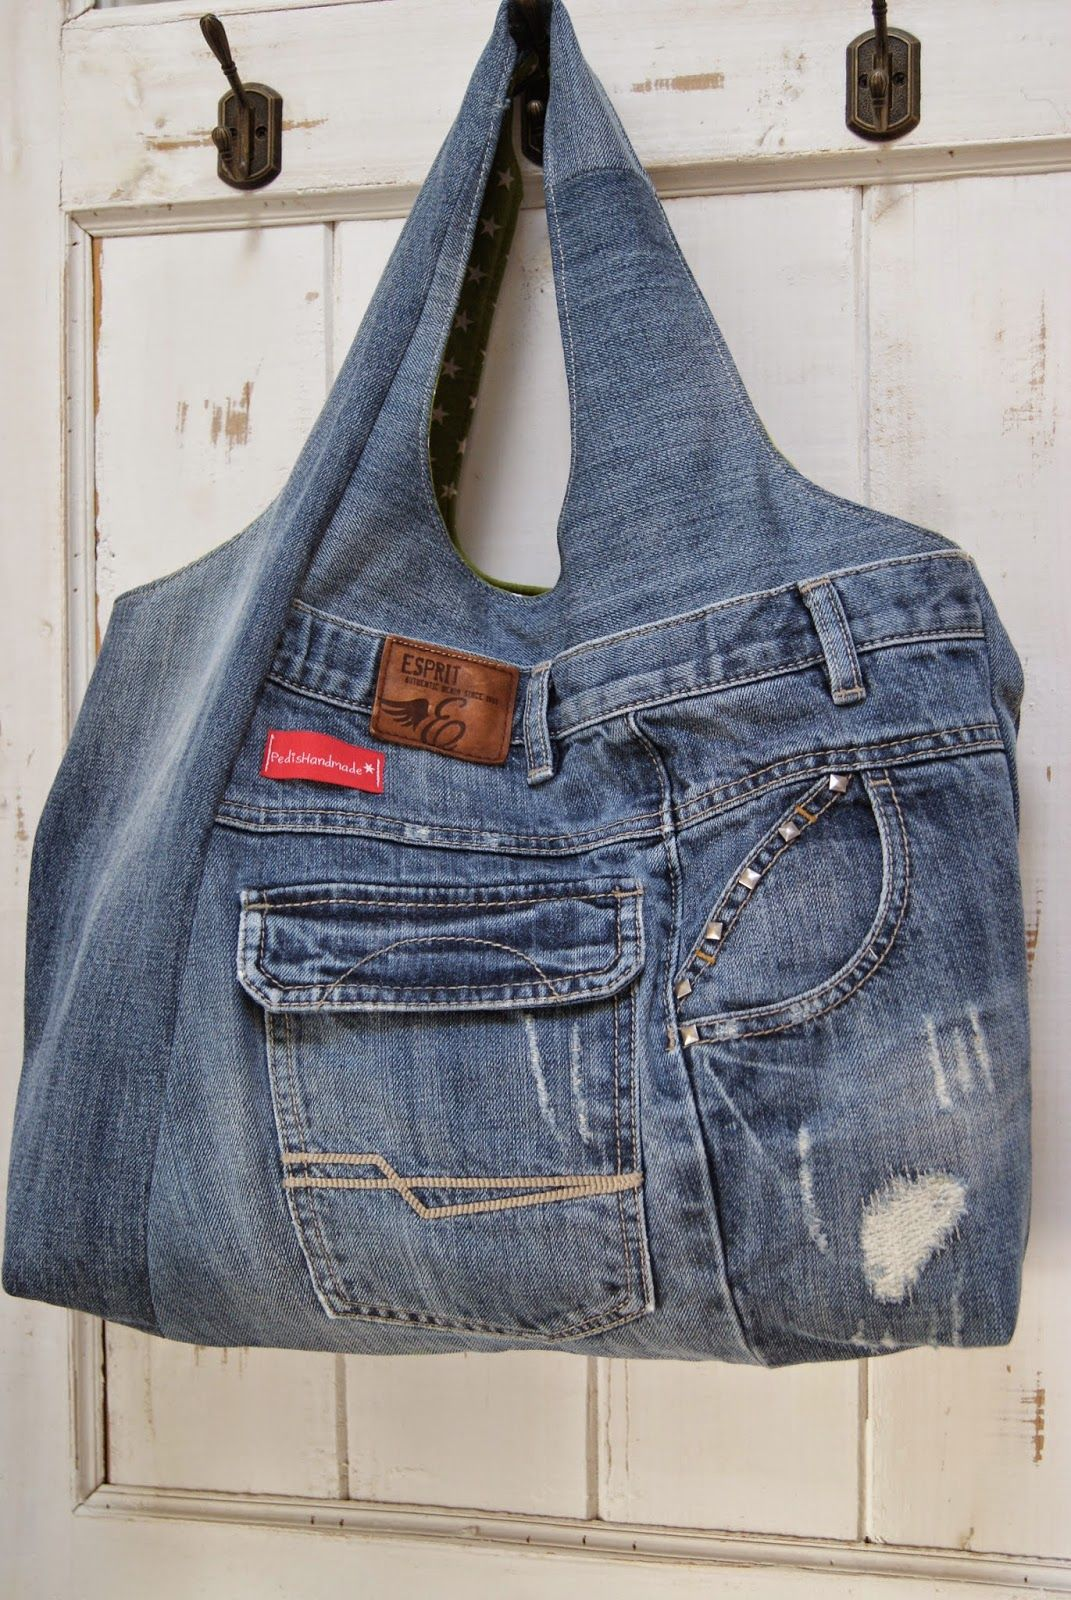 tasche aus alter jeans bag made from old pair of jeans upcycling upcyclingmay2015. Black Bedroom Furniture Sets. Home Design Ideas